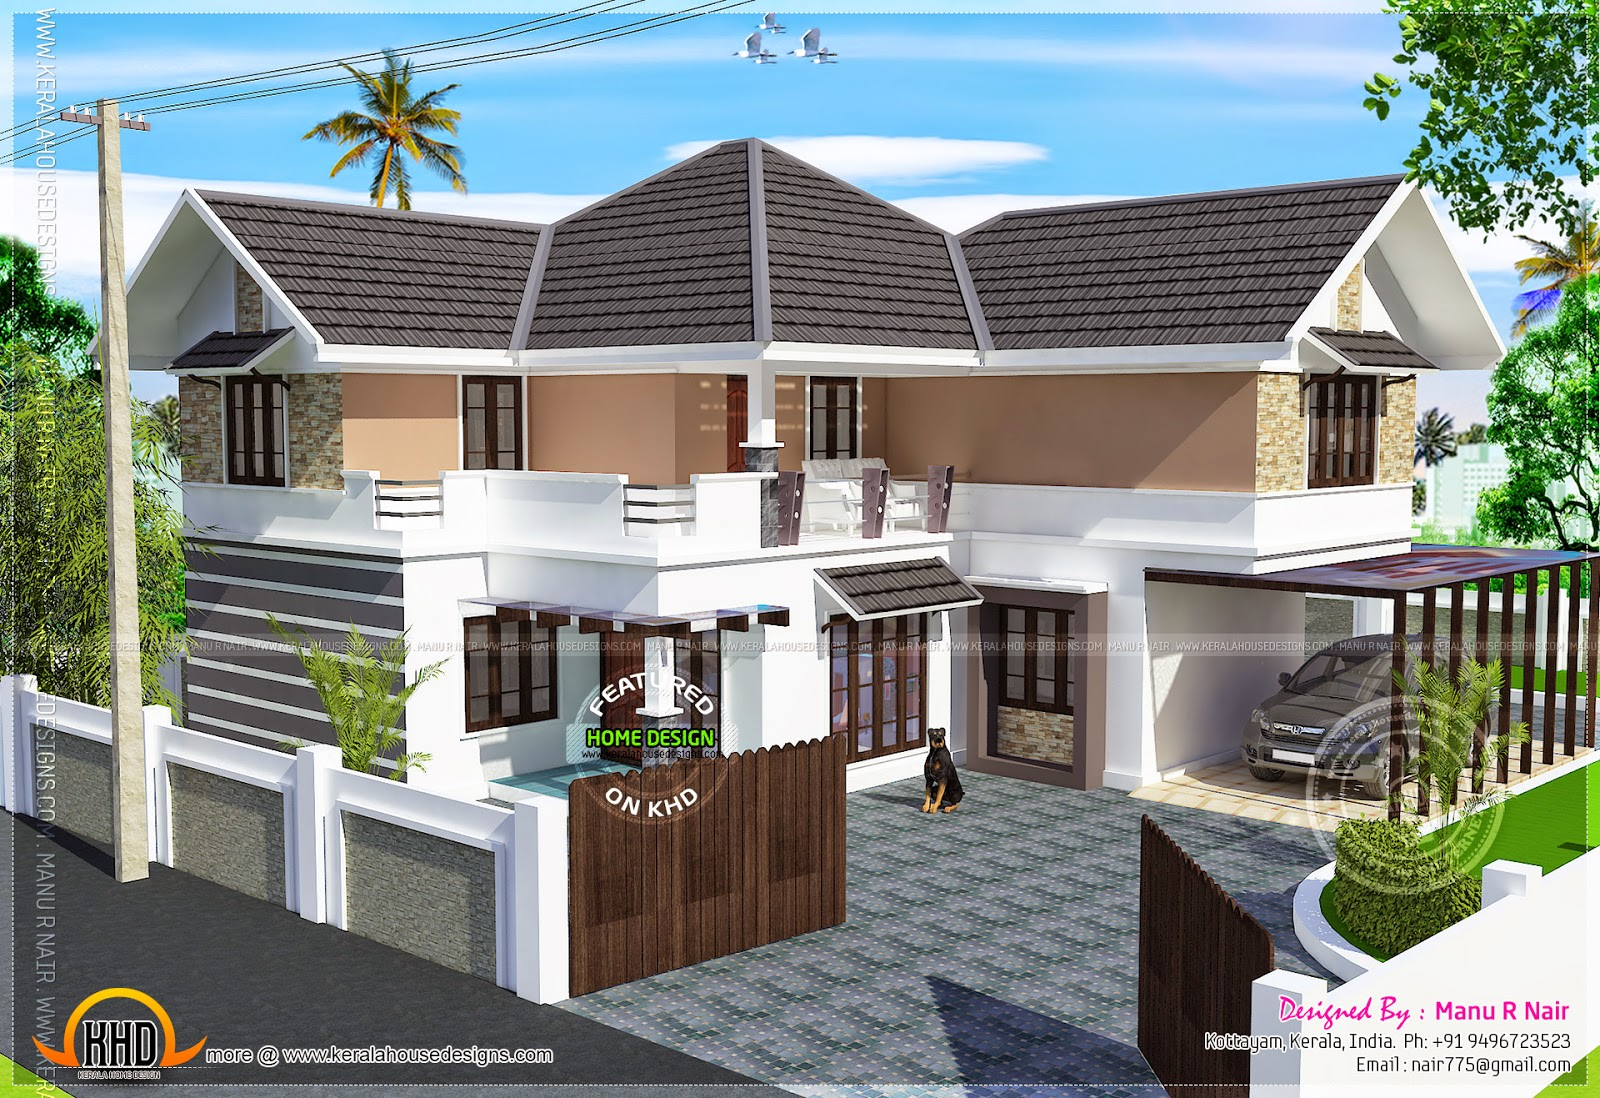 Renovation house existing ground floor and proposed first for Kerala home design ground floor